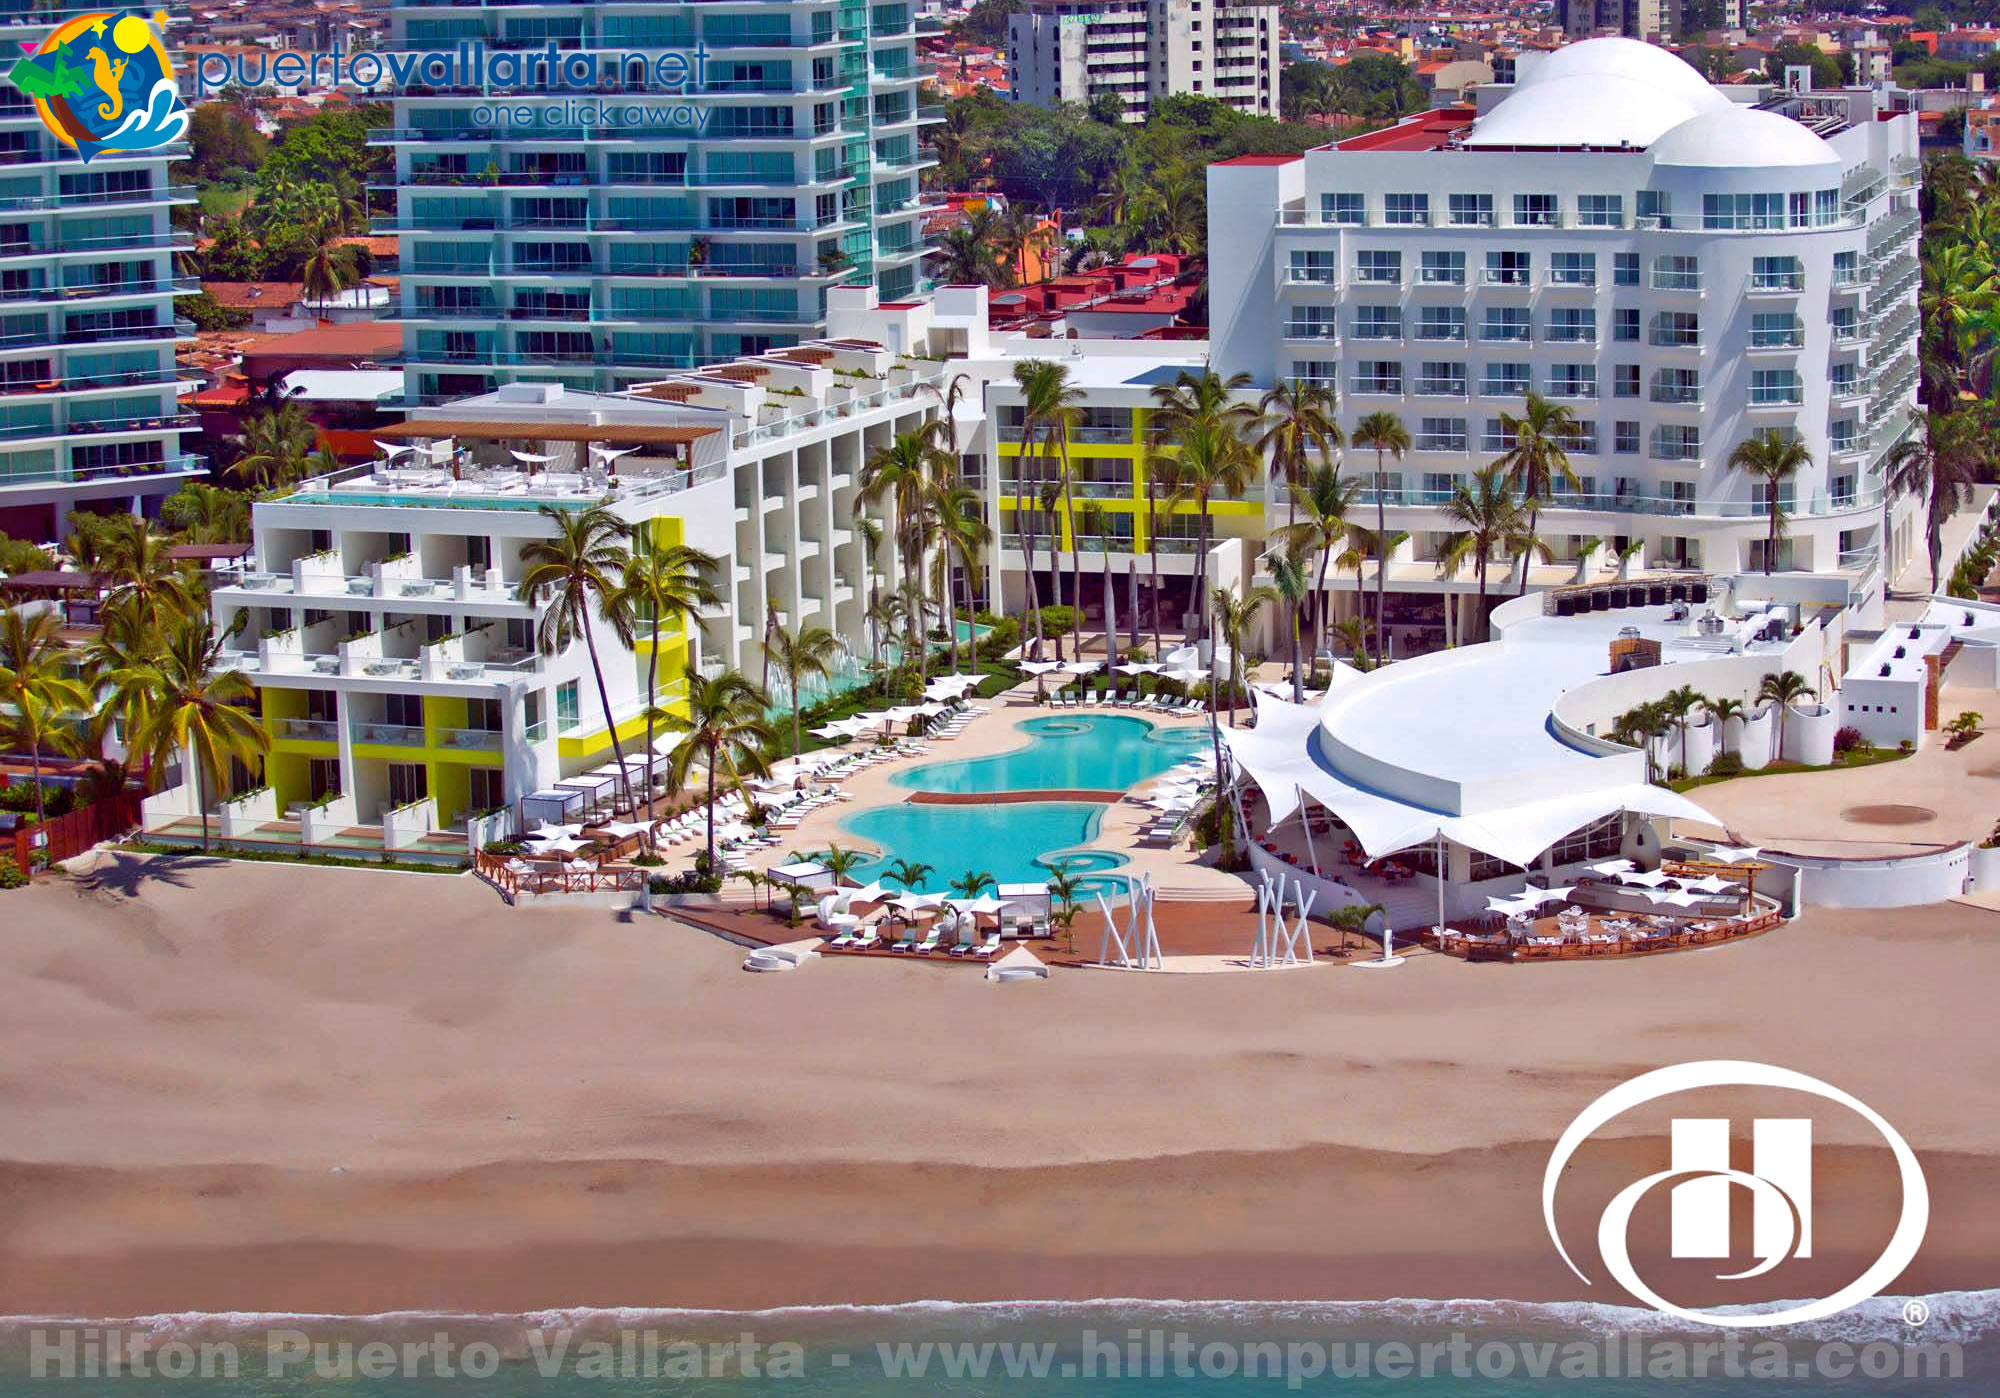 Top All Inclusive Hotels Resorts In Puerto Vallarta - All inclusive resorts in puerto vallarta